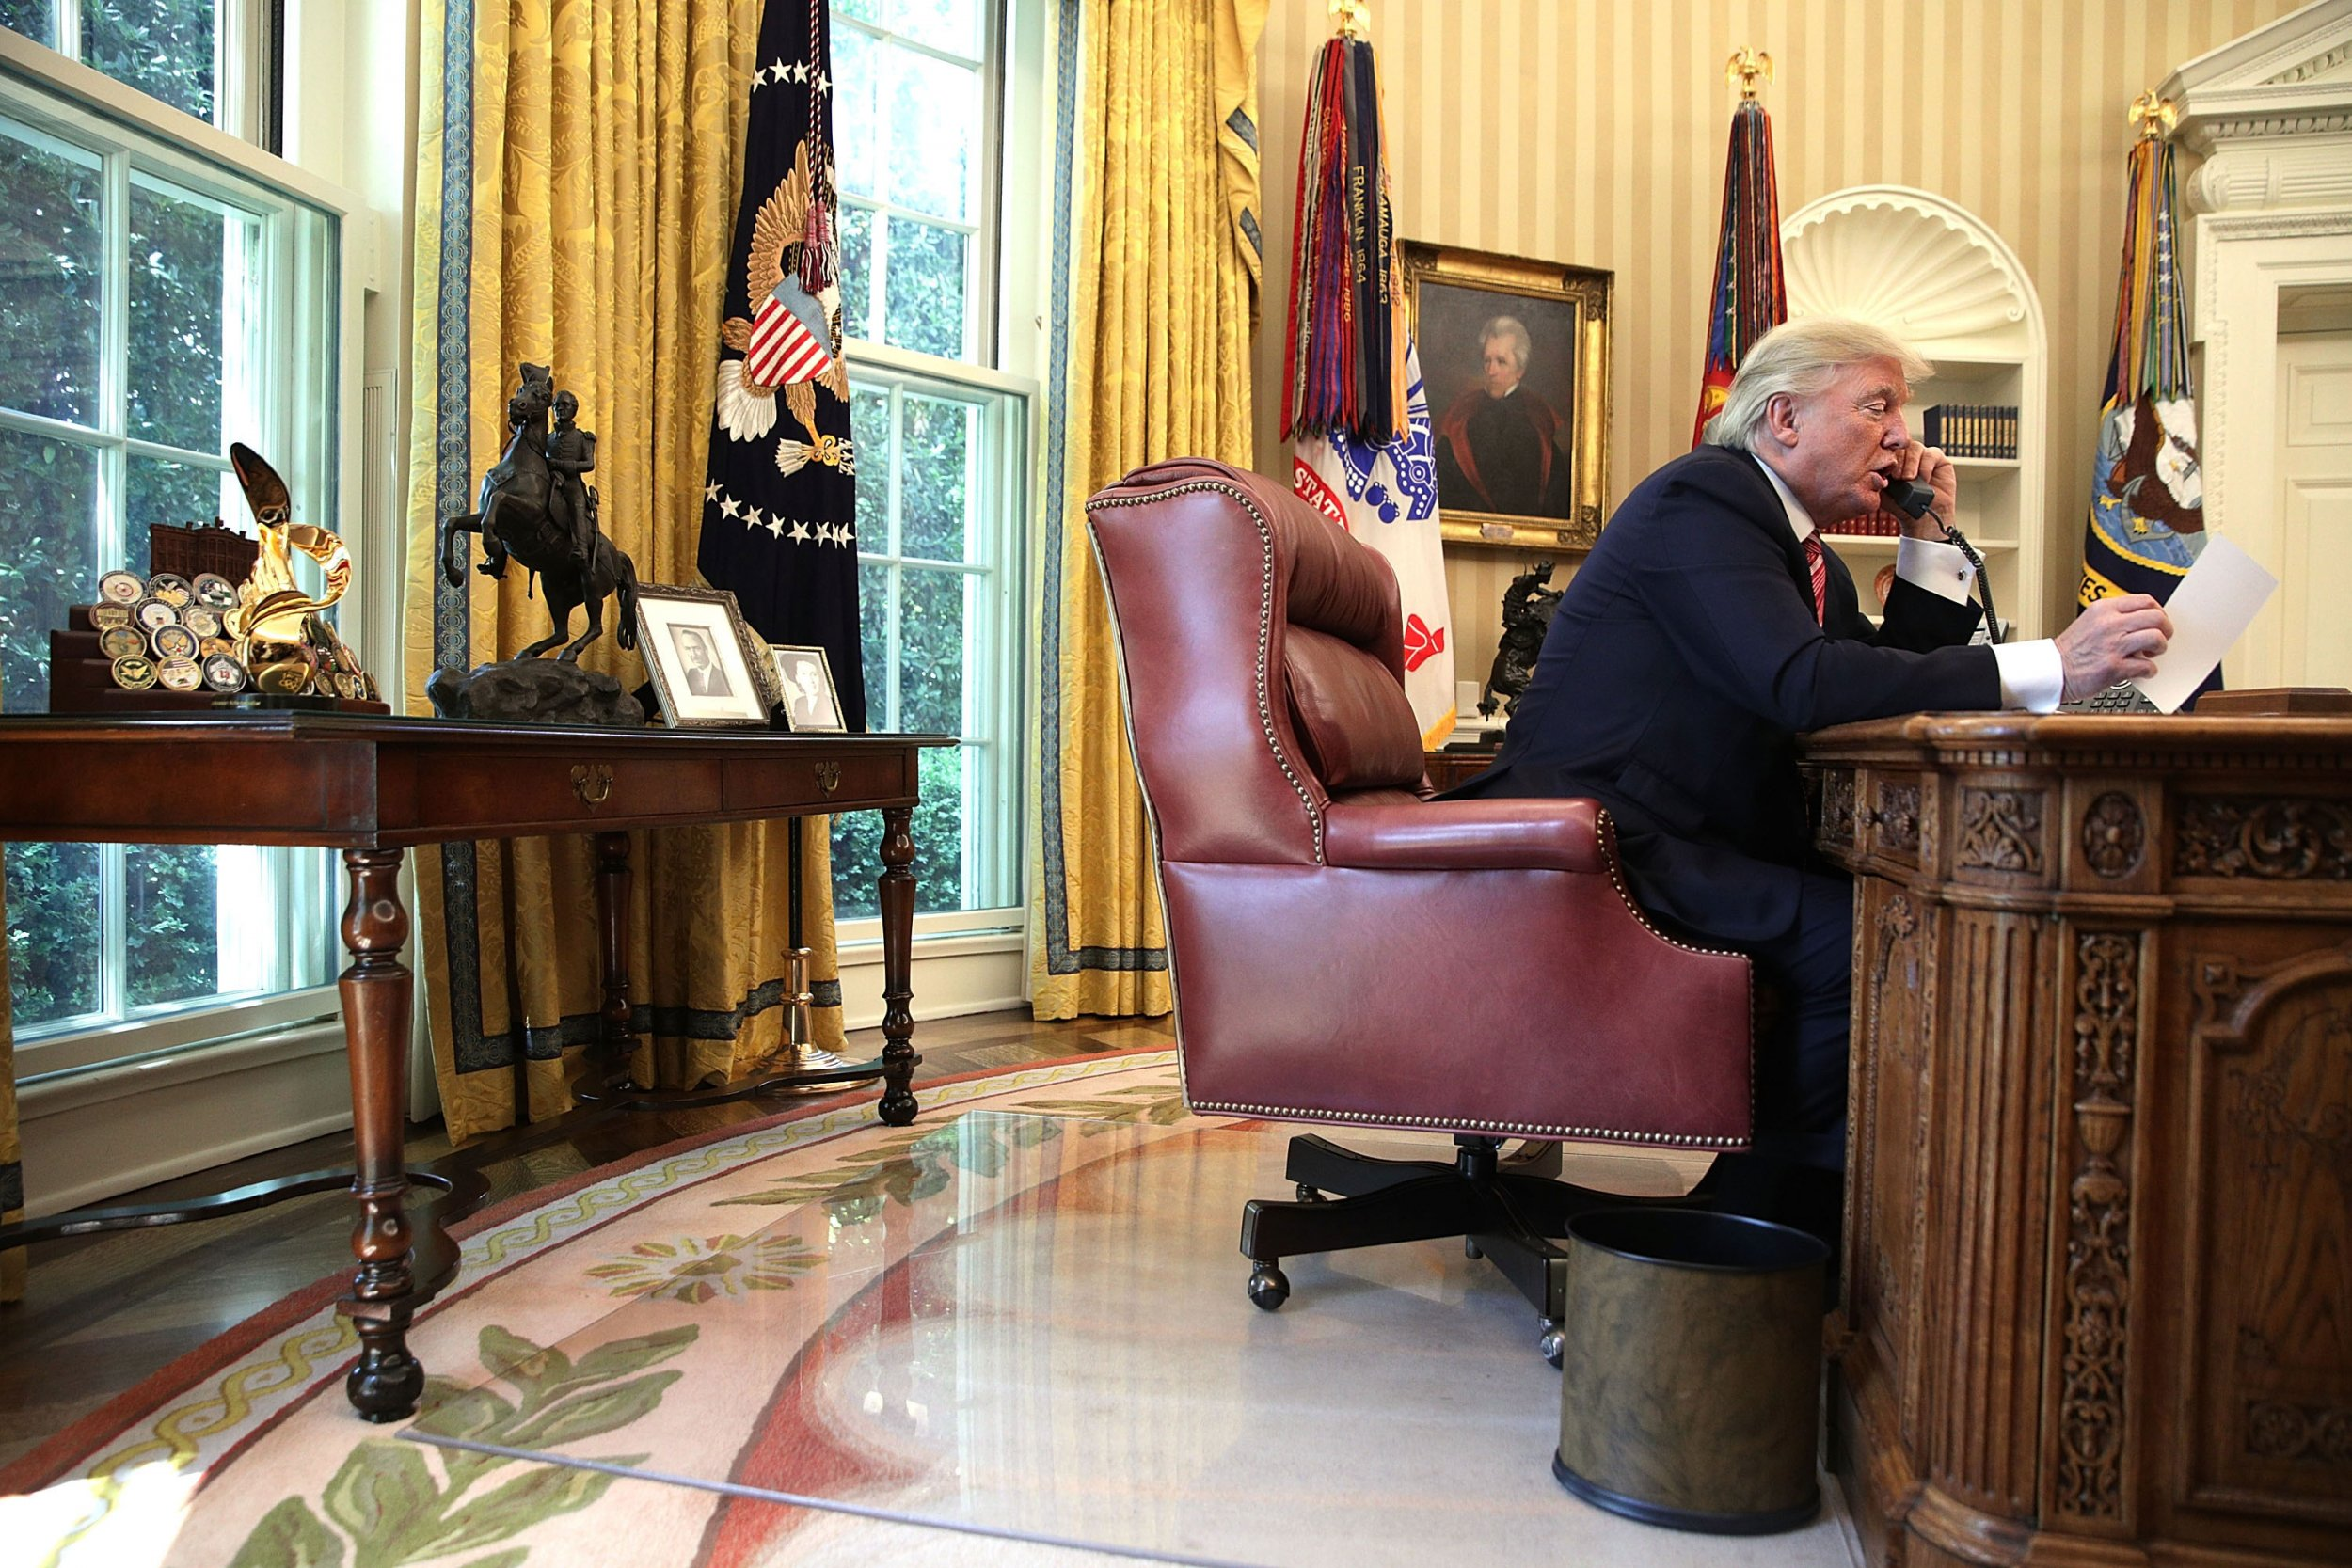 Trump S White House Redecoration Cost 1 75 Million In